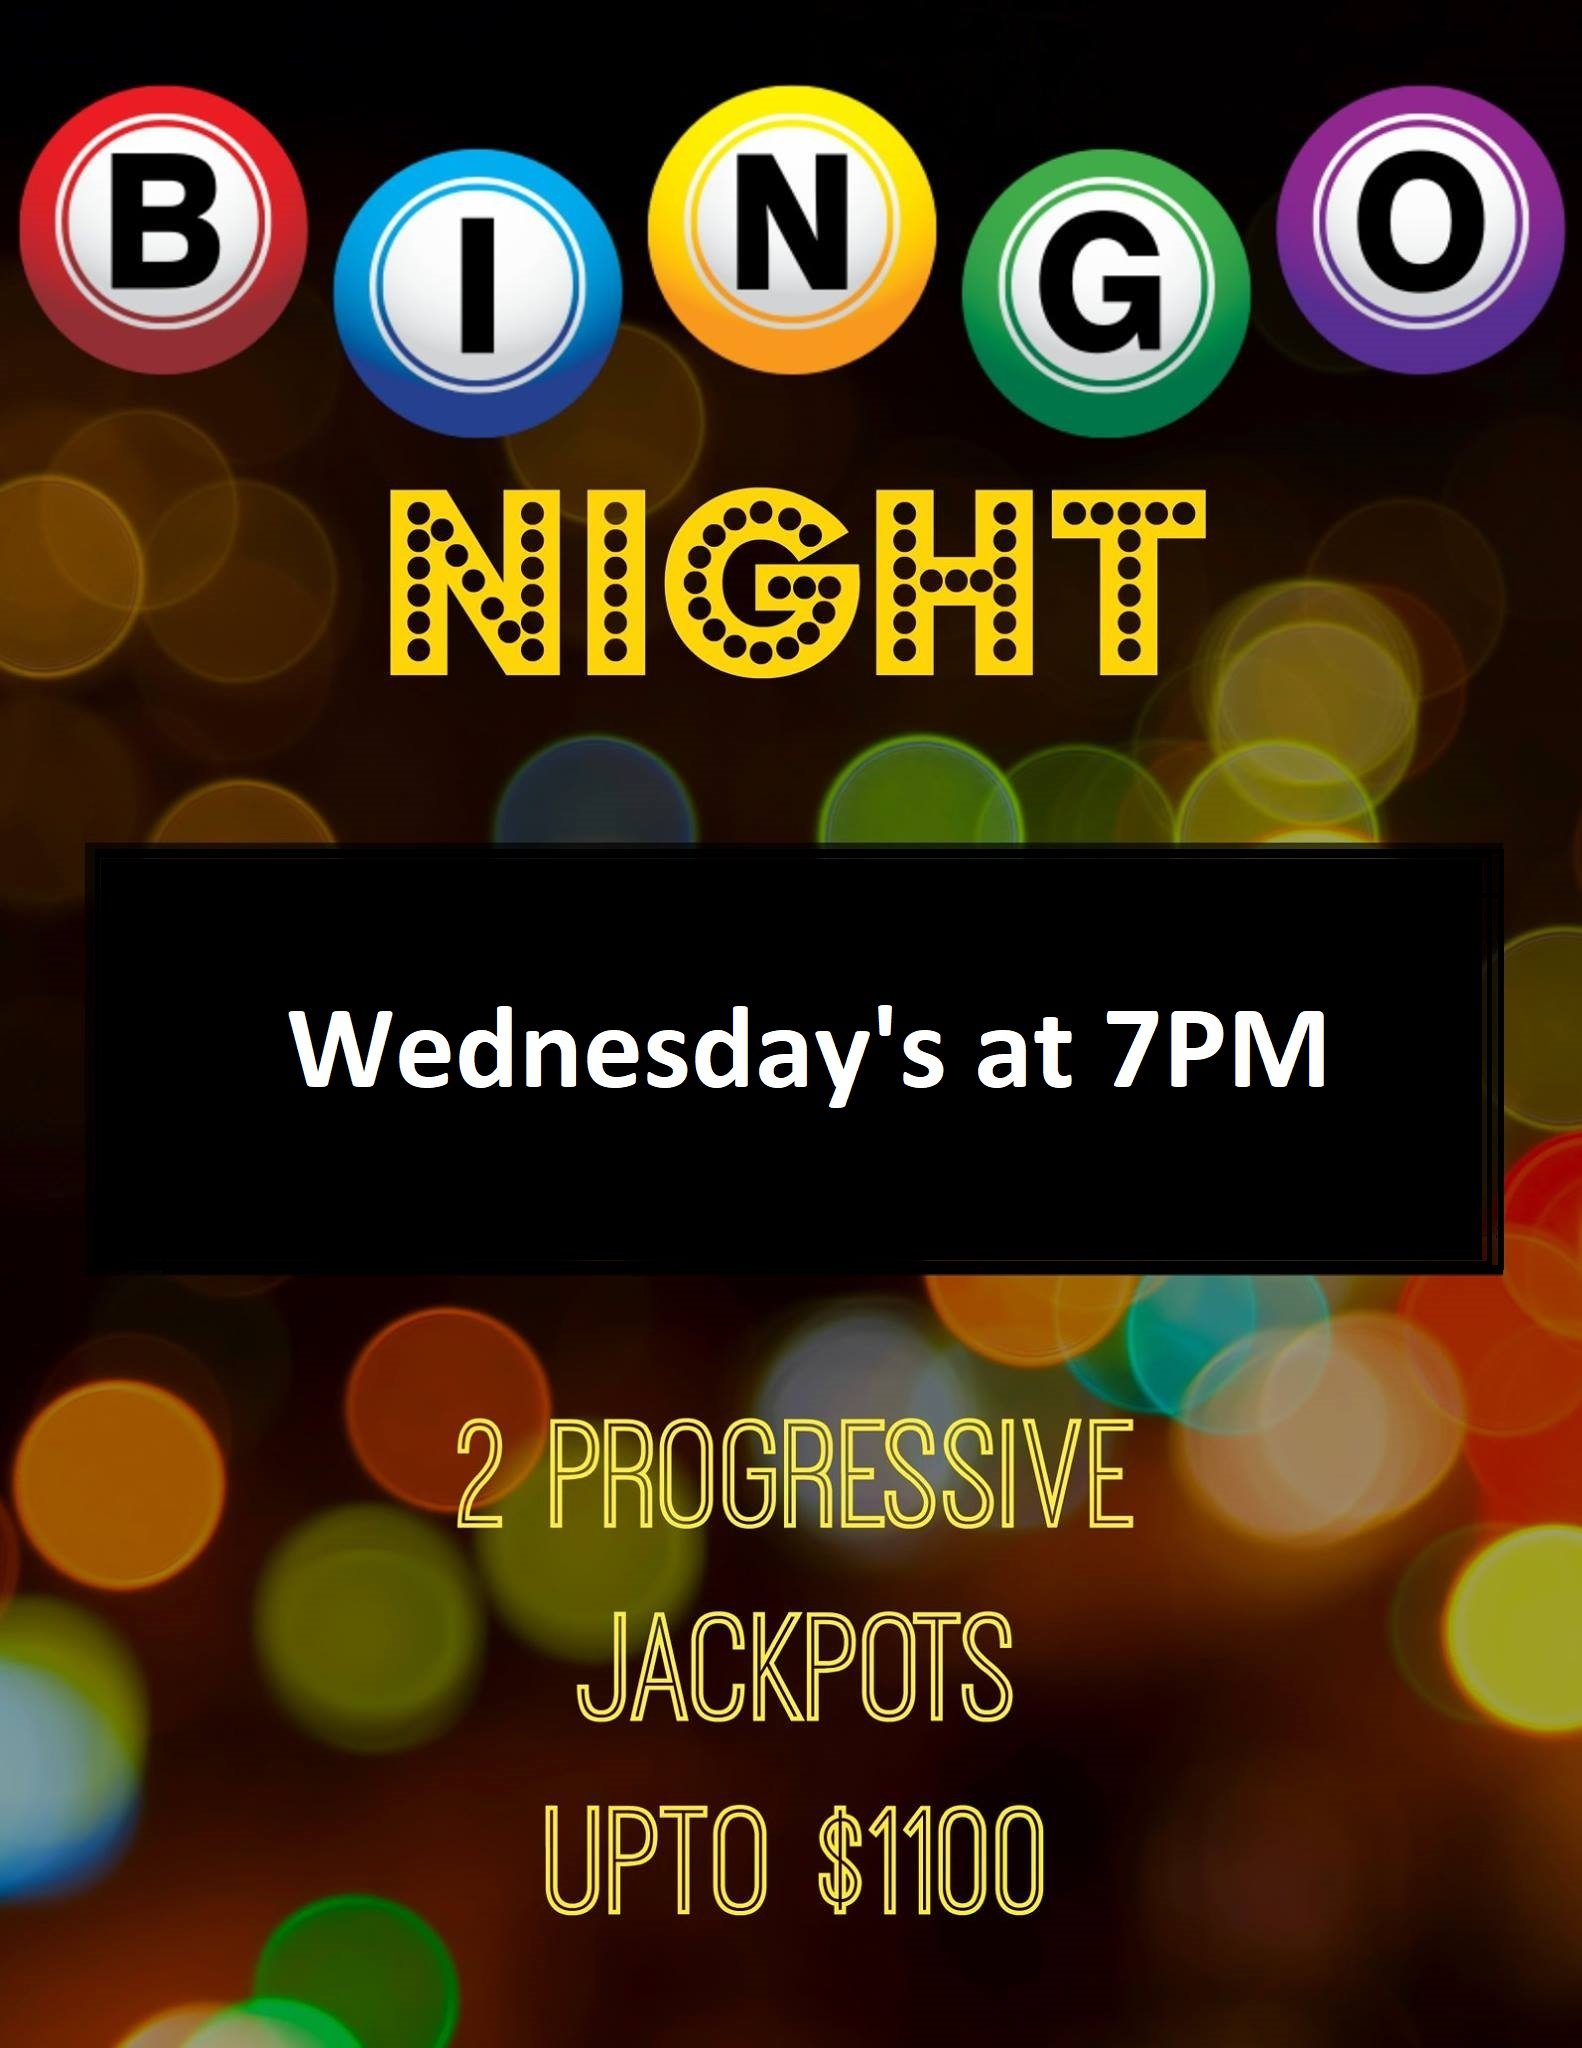 Neisens Sport Bar and Grill Bingo Night